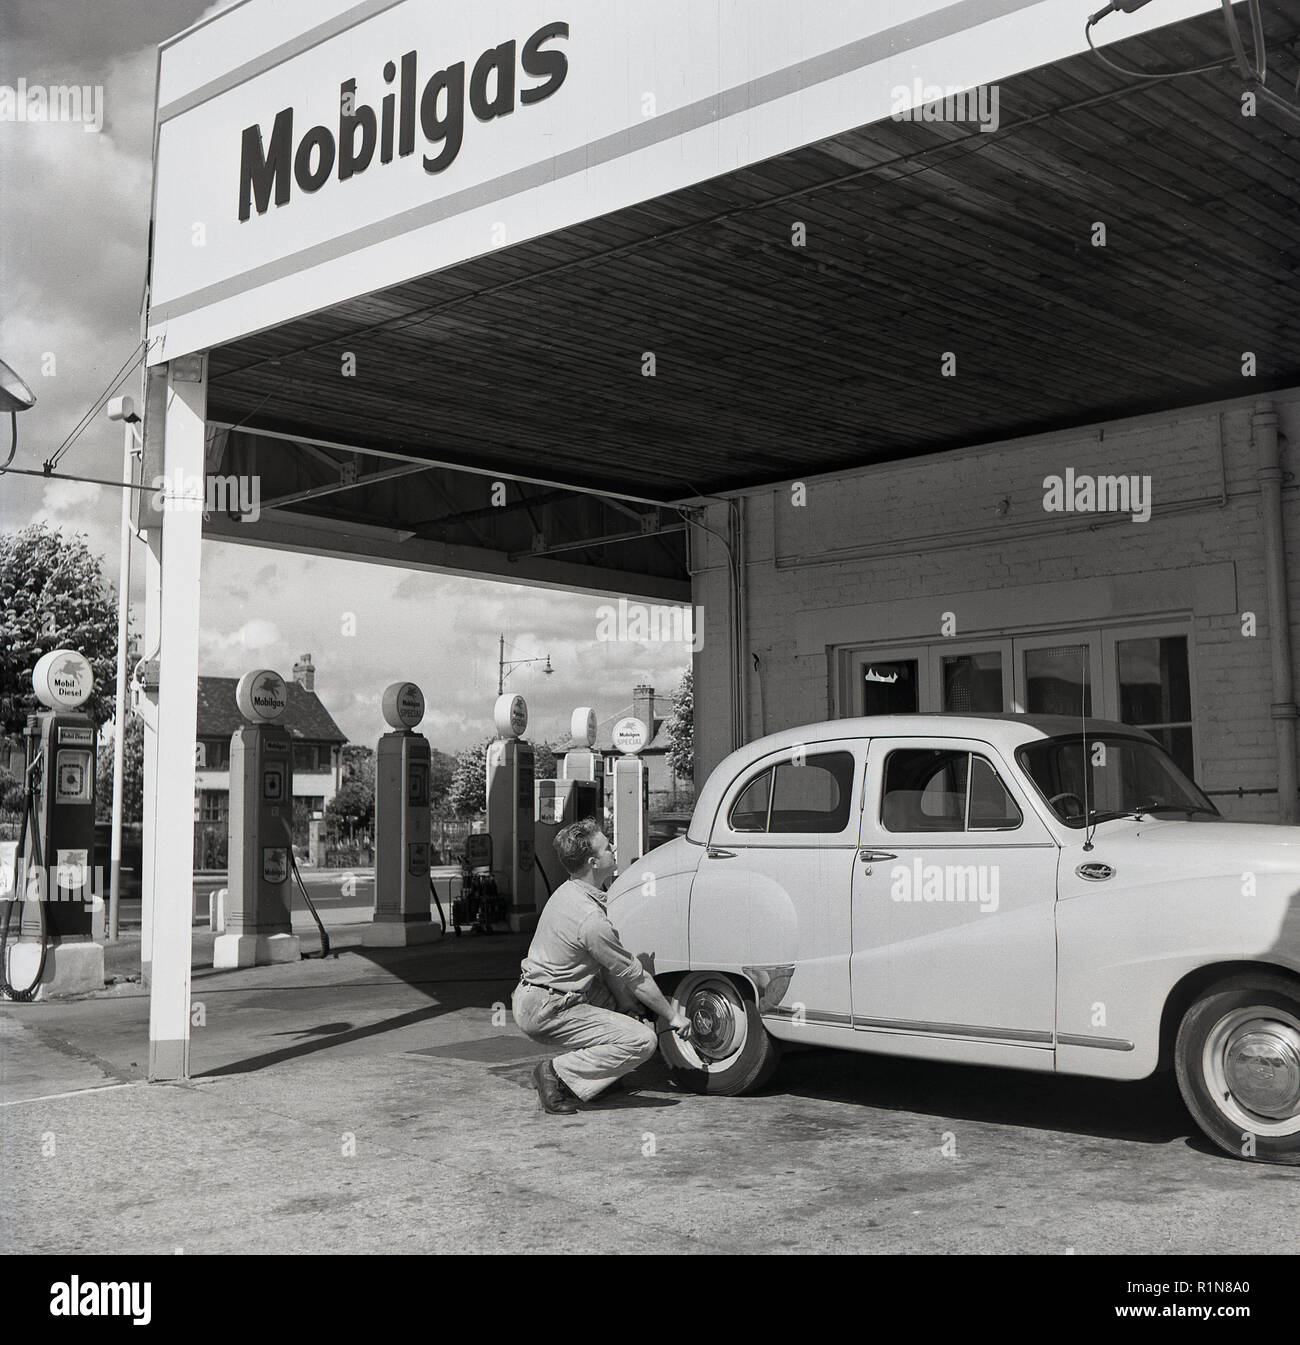 1950s, historical, the golden days of motoring, a service station sttendant checks the tyre pressure on an Austin car parked at the Mobilgas Ravenscroft Service Station, Great West Road, London, England, UK. - Stock Image